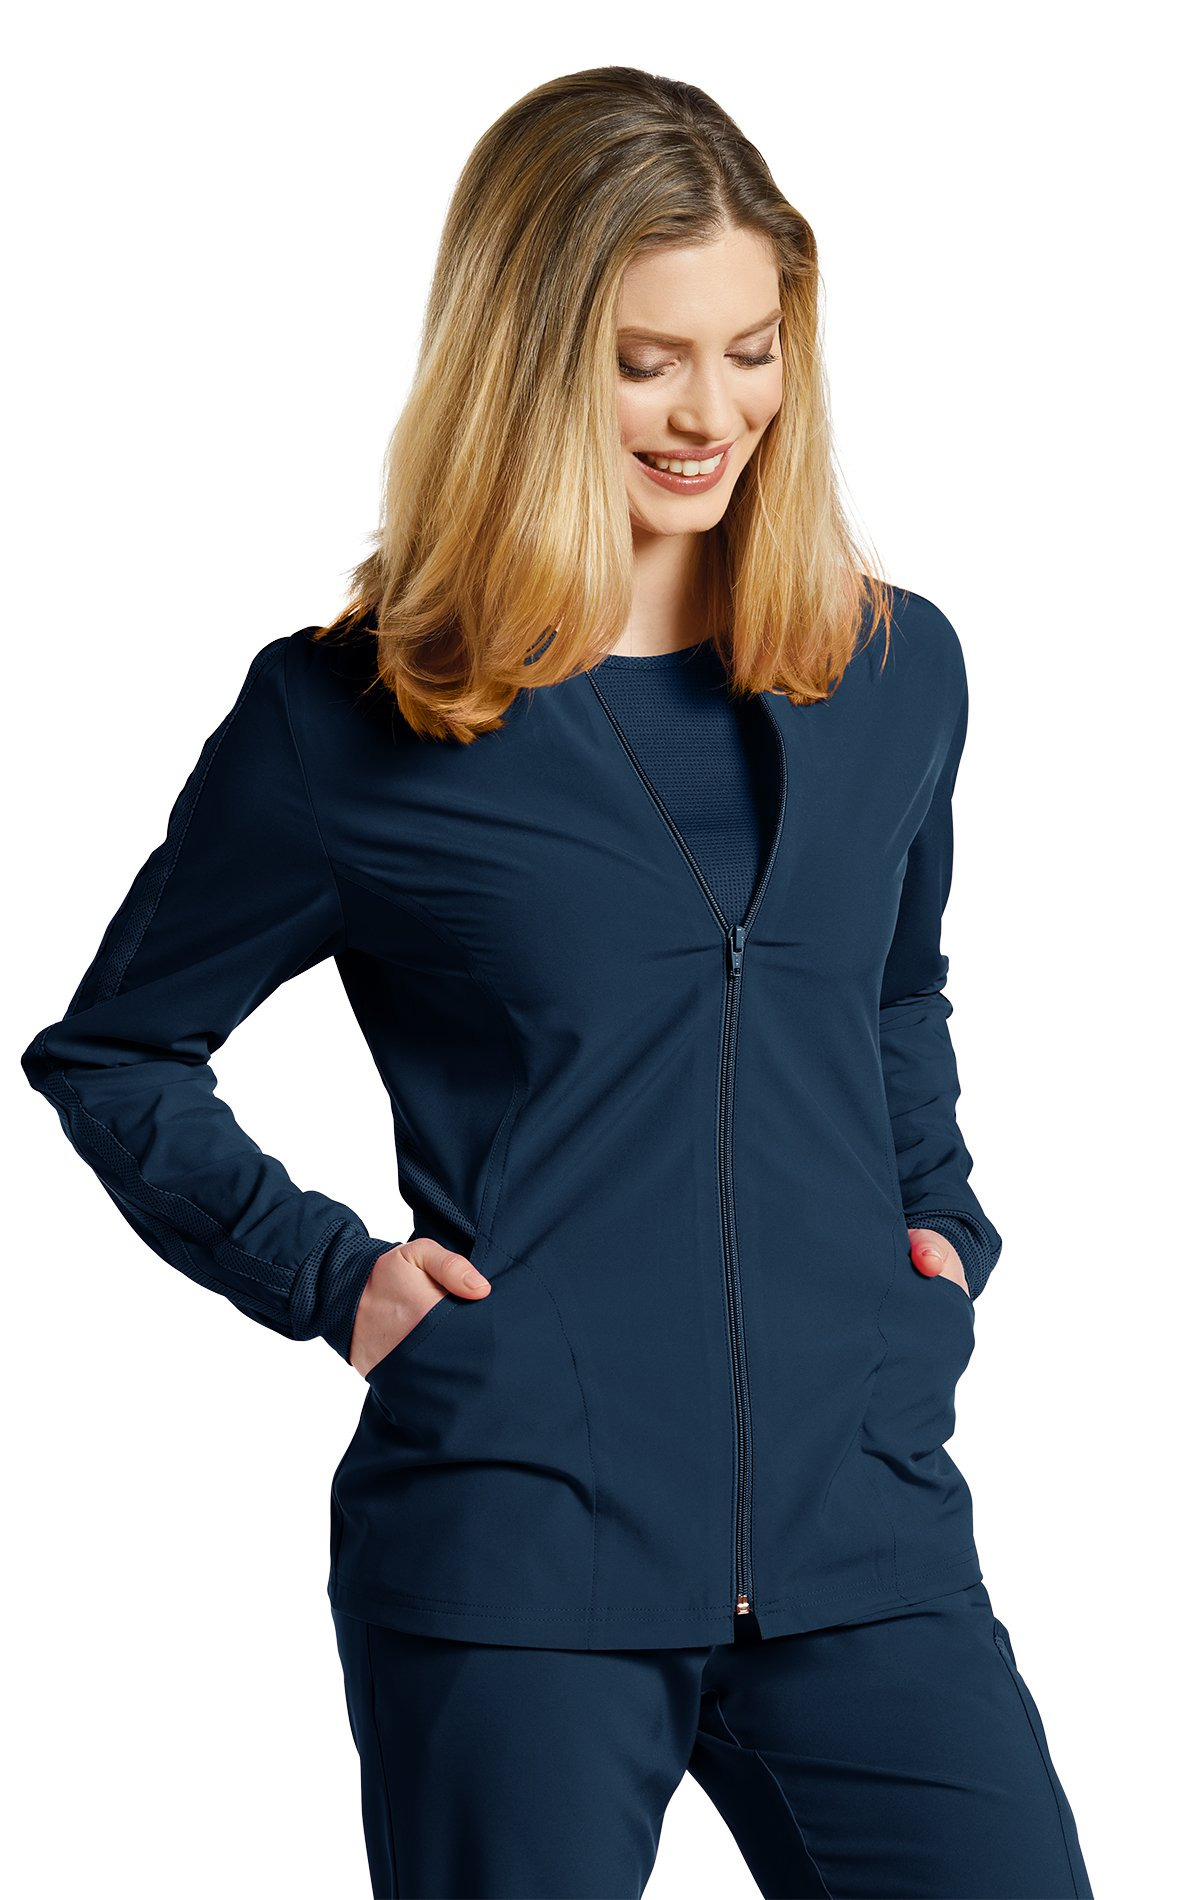 Fit by White Cross Women's 957 Zip up Mesh Accent Warm up Jacket- Navy- Medium